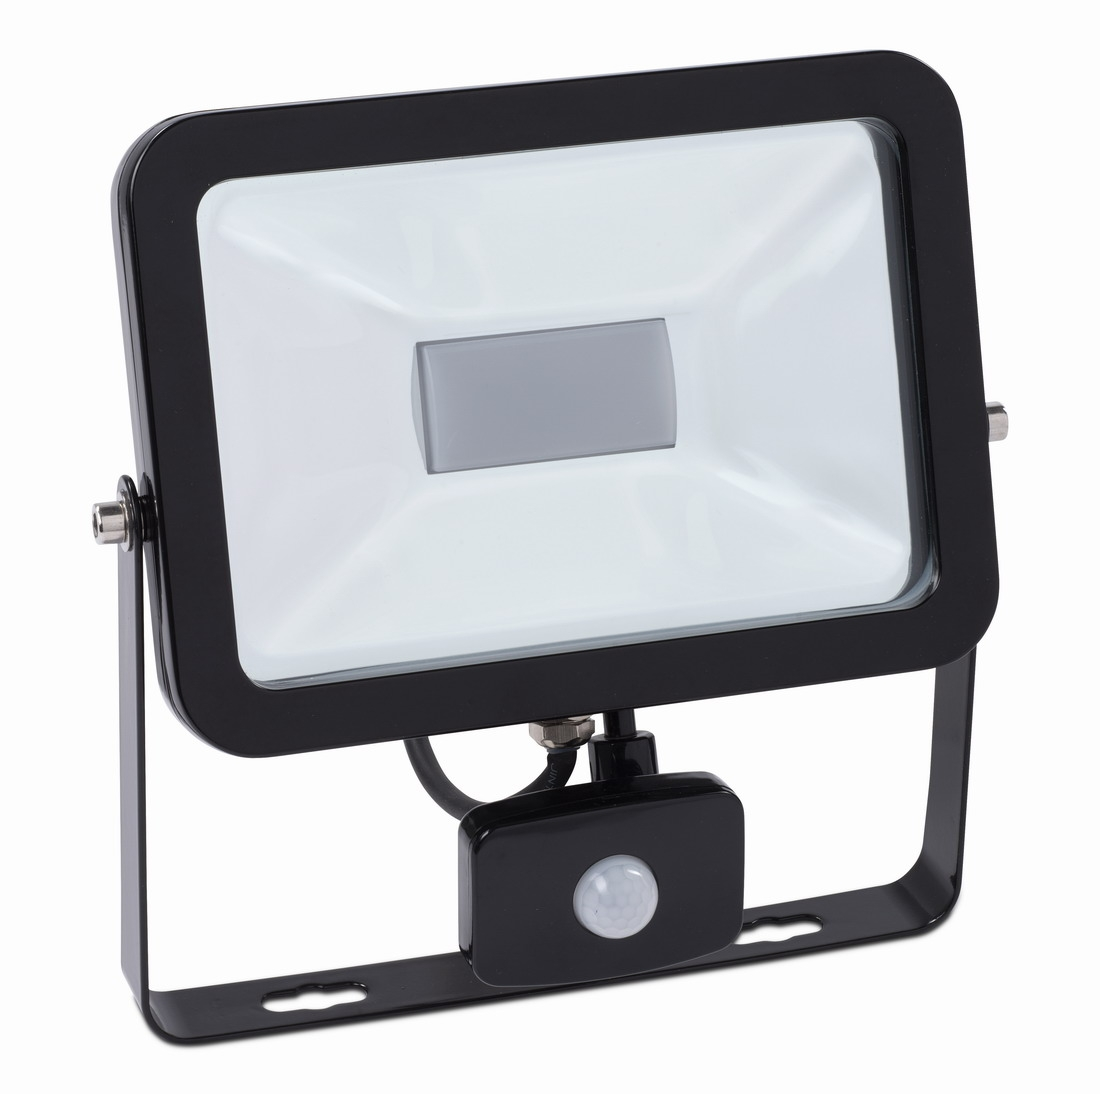 POWLI20301 - LED reflektor 30 W  plus  SENZOR